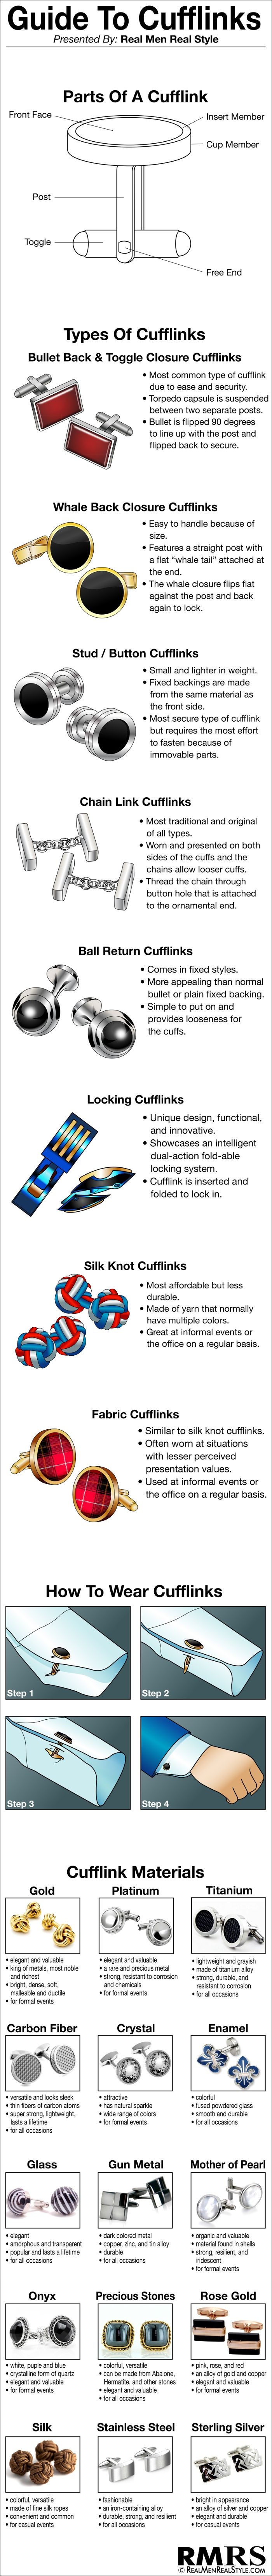 Ultimate Guide to Cufflinks Infographic